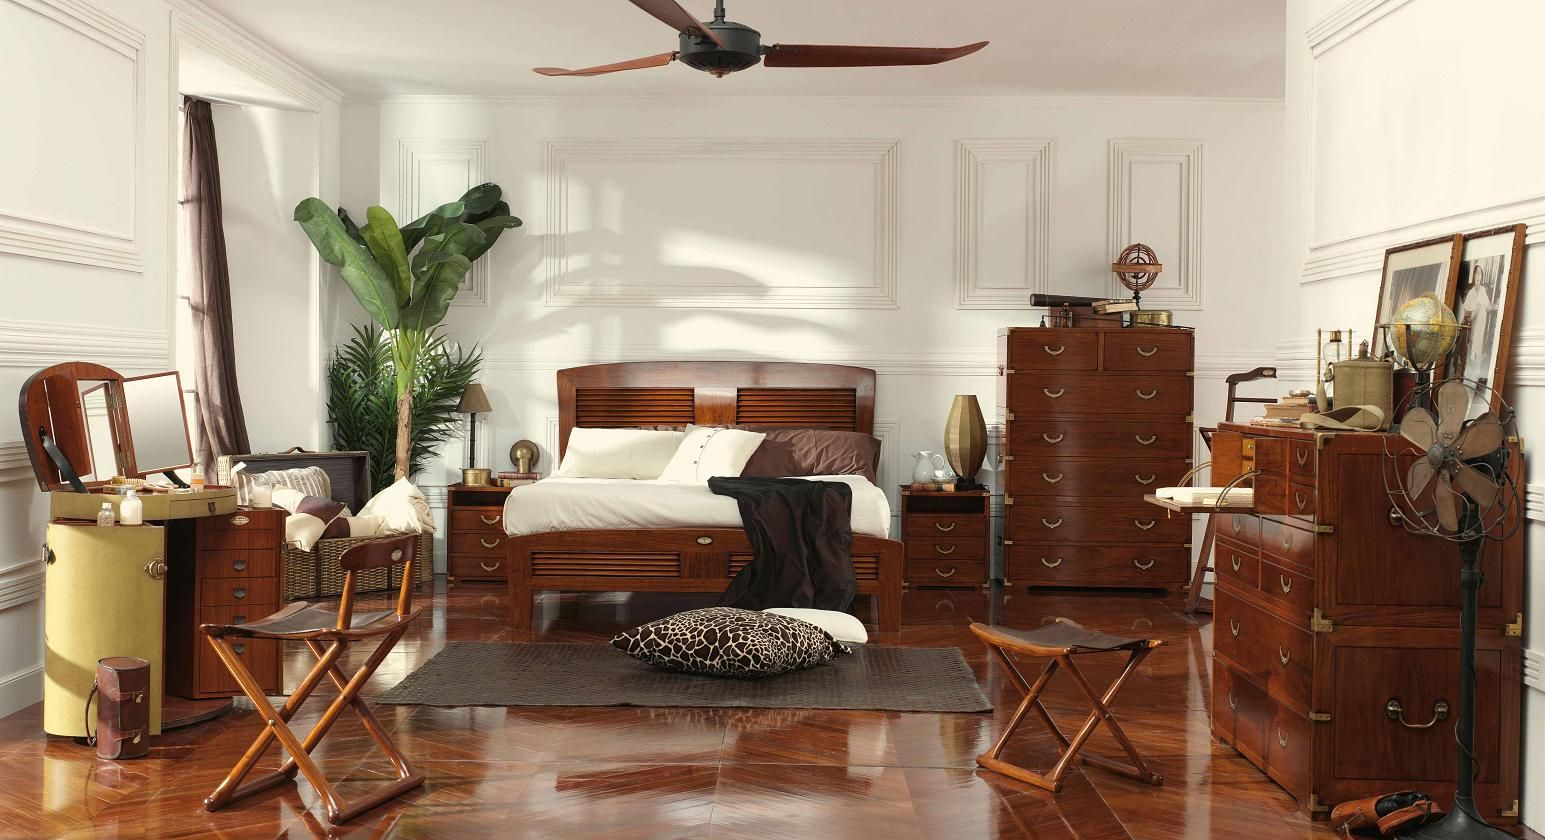 d coration chambre ambiance coloniale d co exotique pinterest colonial d coration. Black Bedroom Furniture Sets. Home Design Ideas